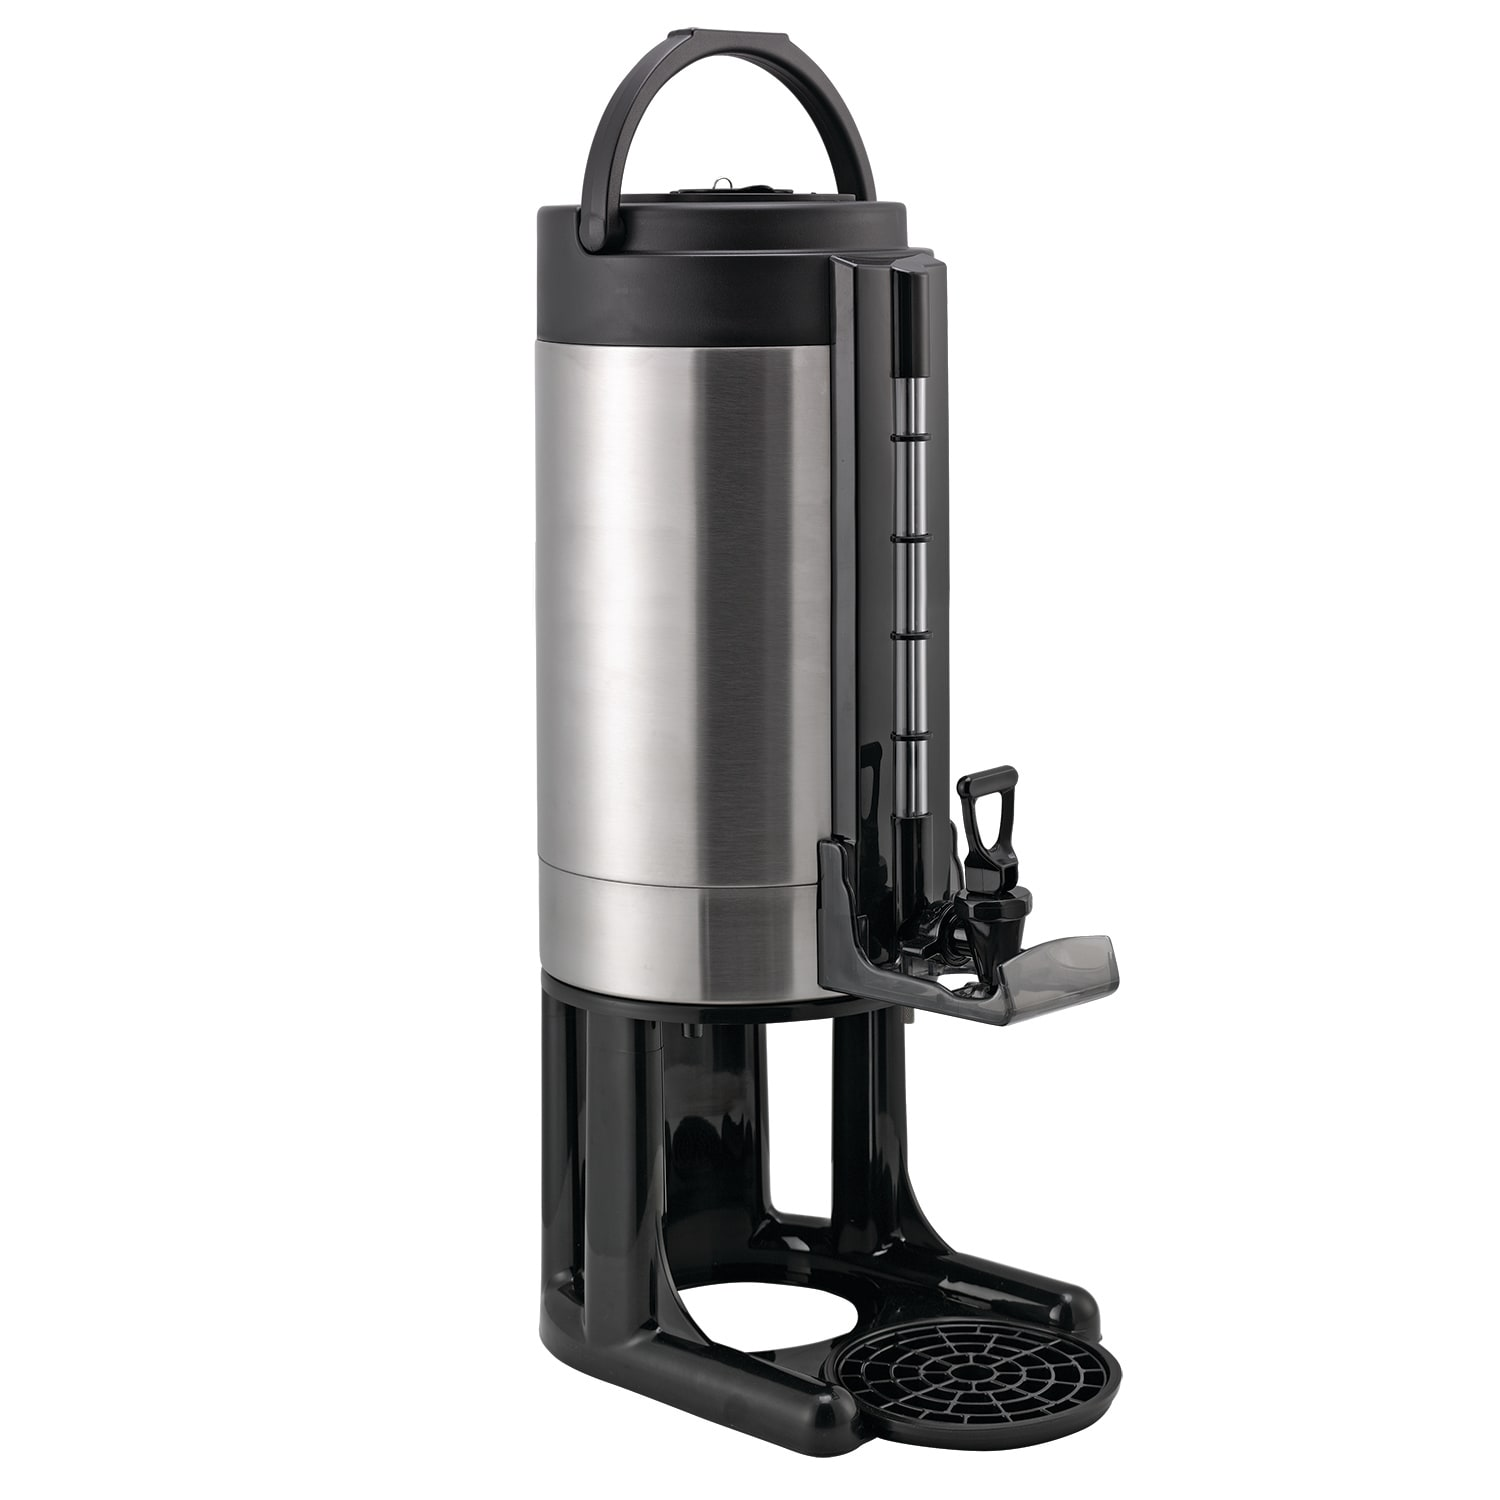 Service Ideas GIU2G 2-Gallon Brew-Thru Thermal Container w/ Drip Tray, Stainless